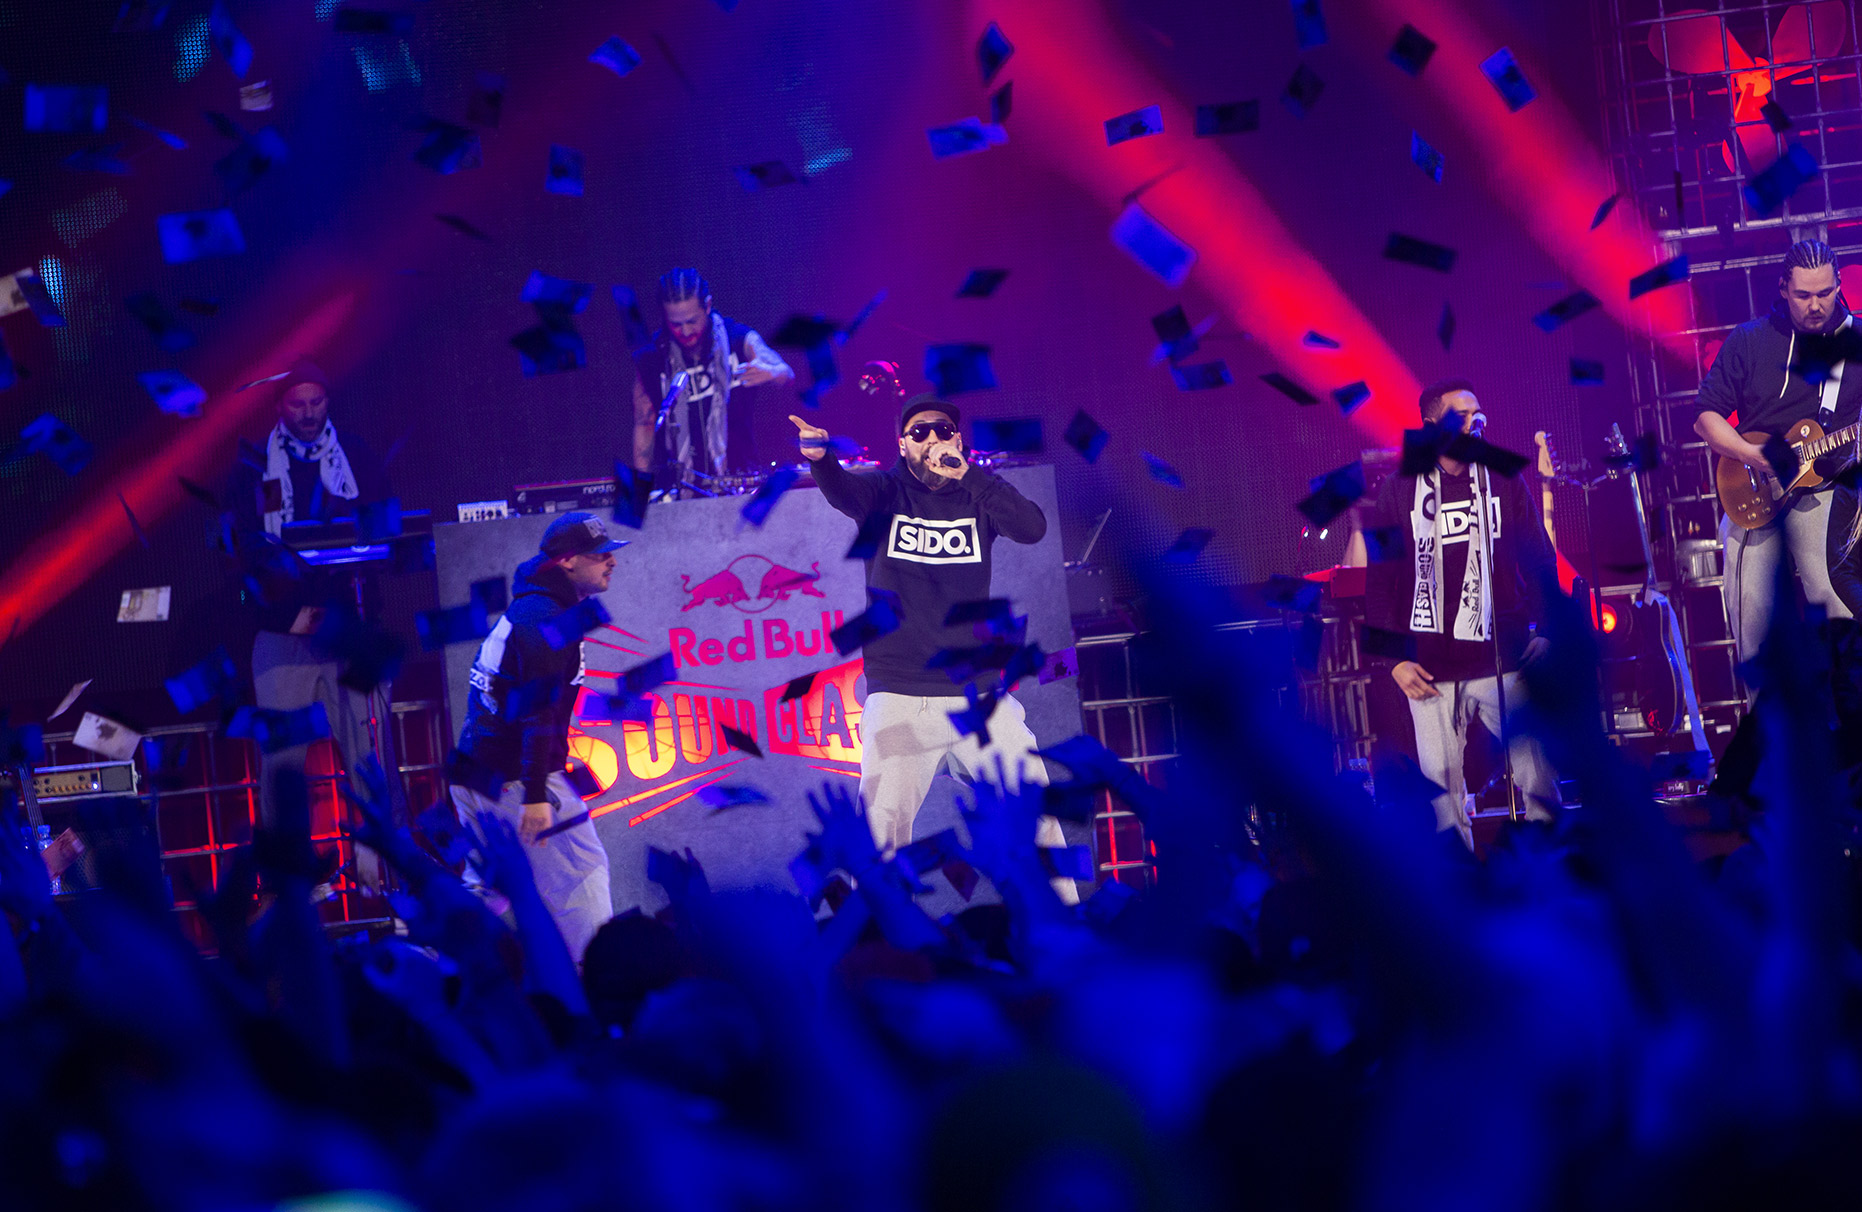 © Dirk Mathesius, SIDO is performing at Red Bull Sound Clash Stage, Essen, germany, Client Red Bull